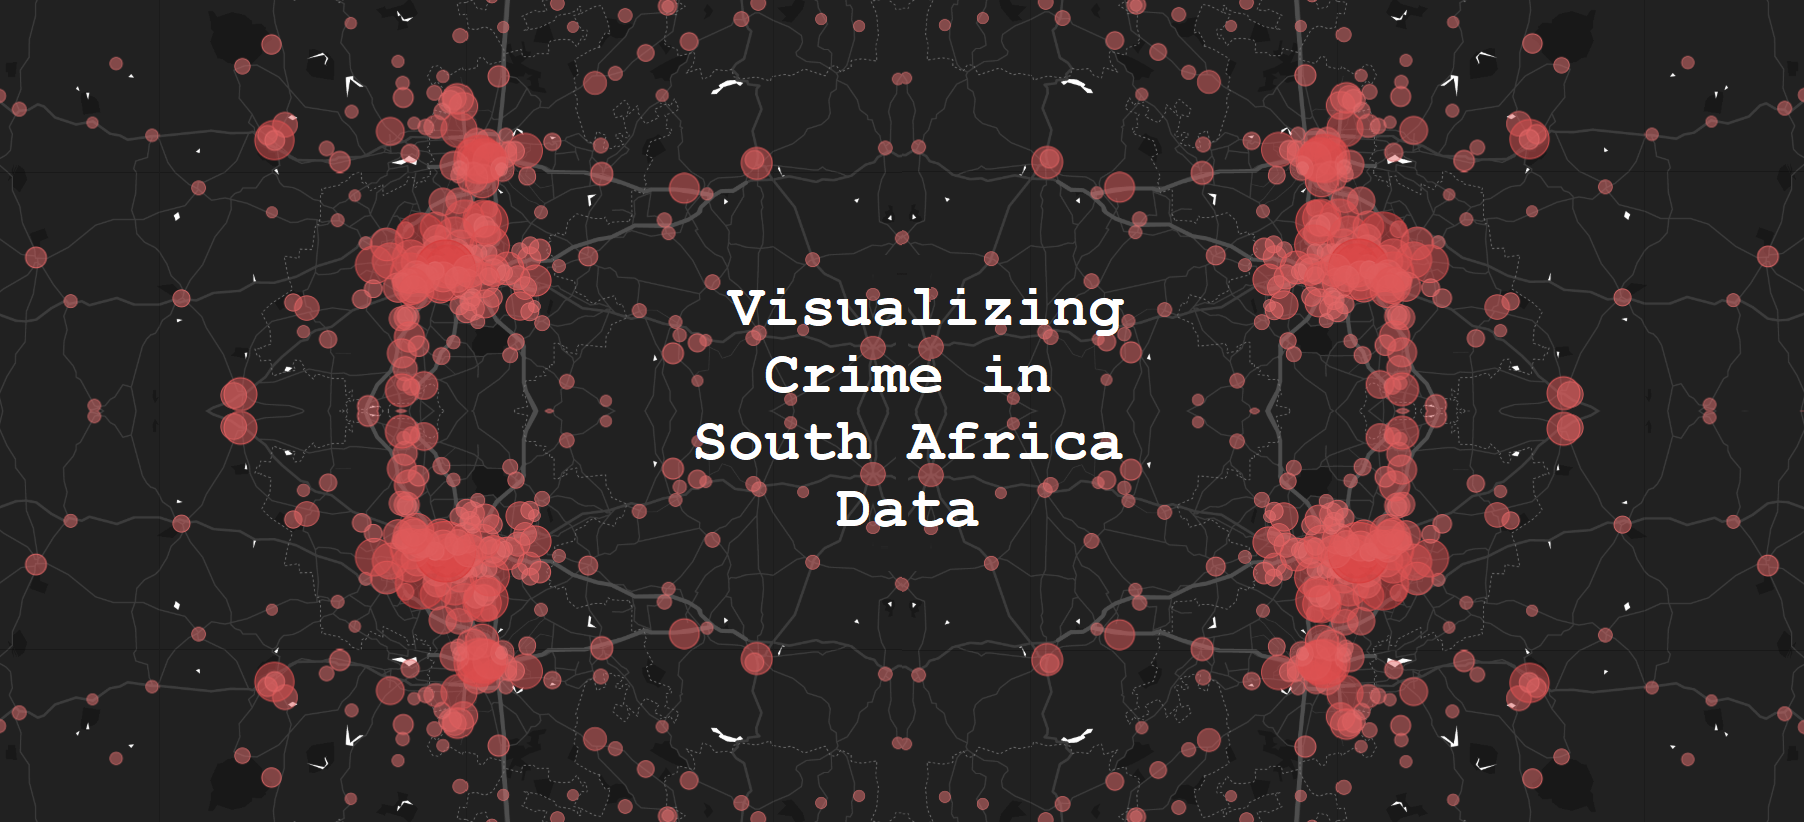 Visualizing Crime in South Africa Data